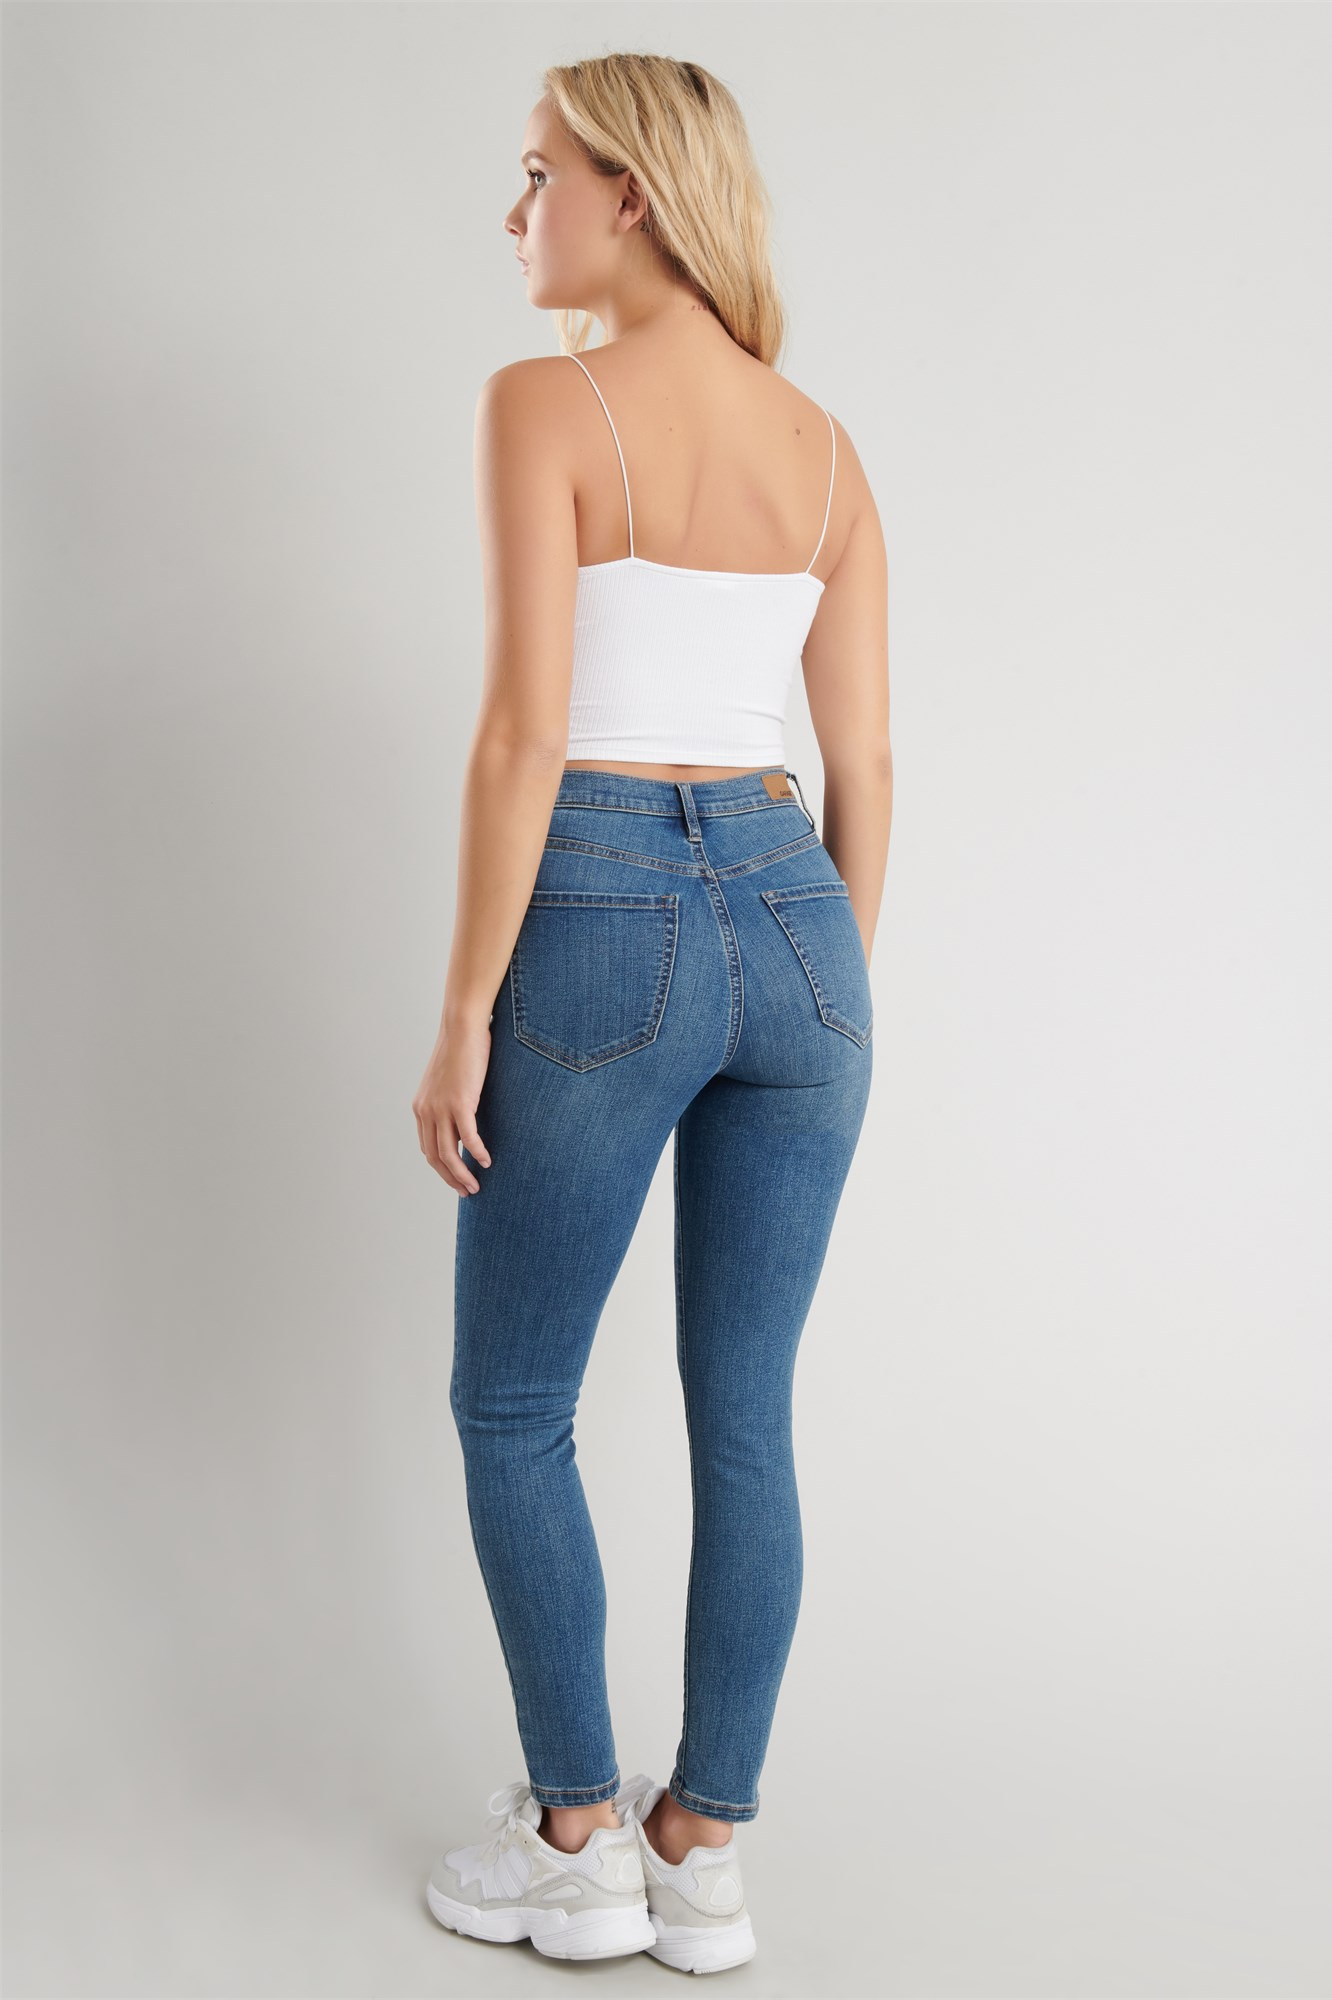 Image 3 of Ultra High Rise Jegging - Balos Blue